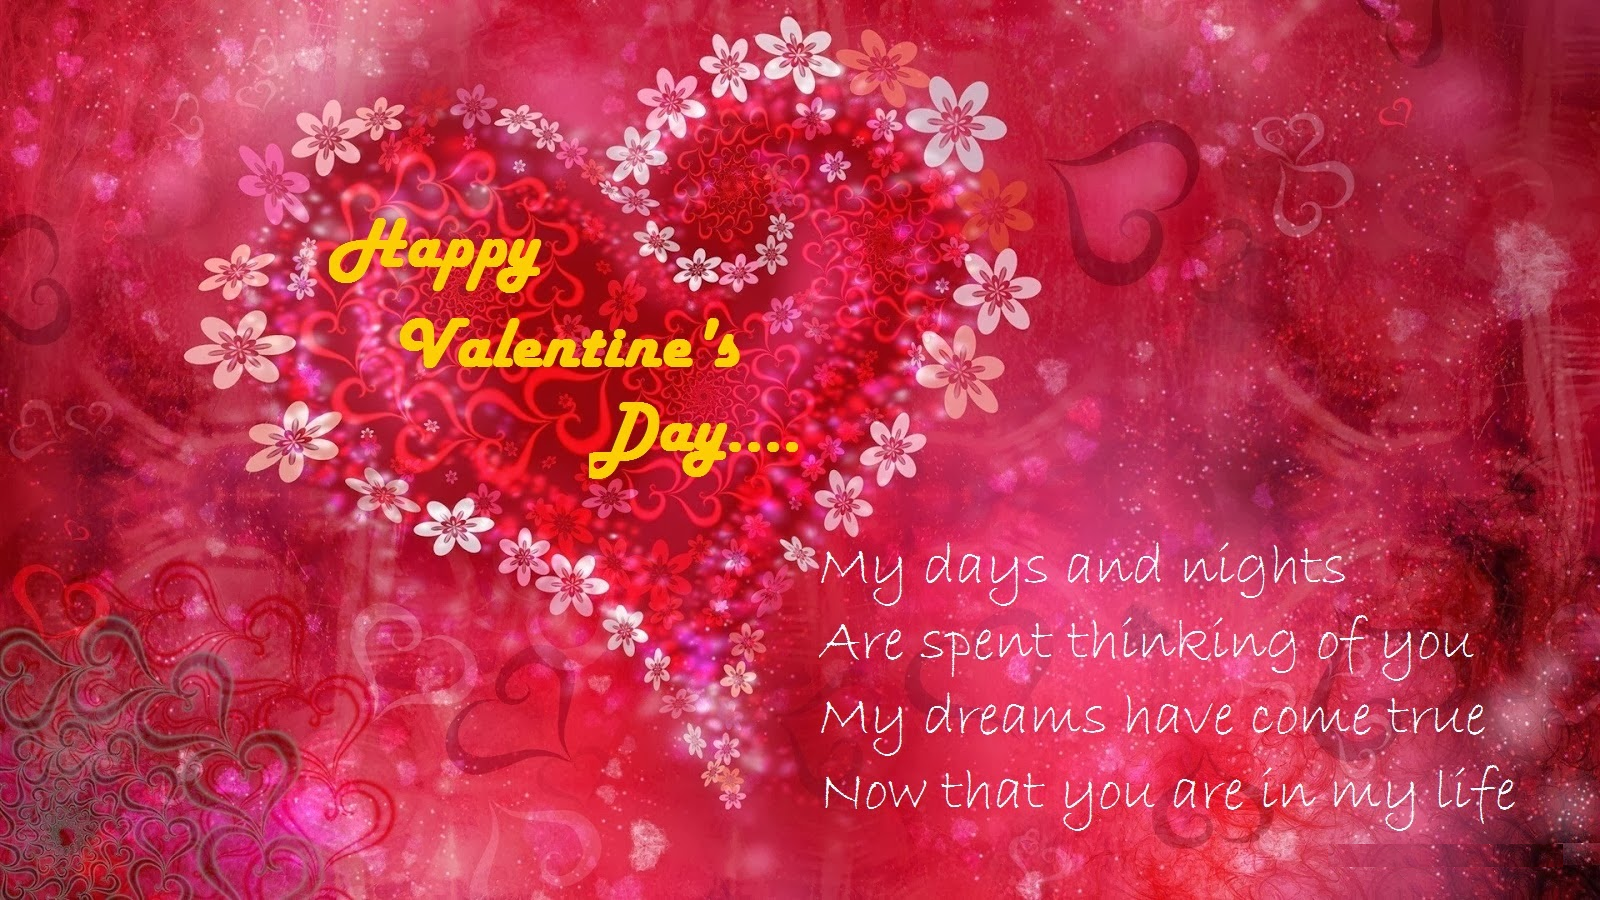 Wallpaper download dp - Download Valentines Day Images For Whatsapp Dp Profile